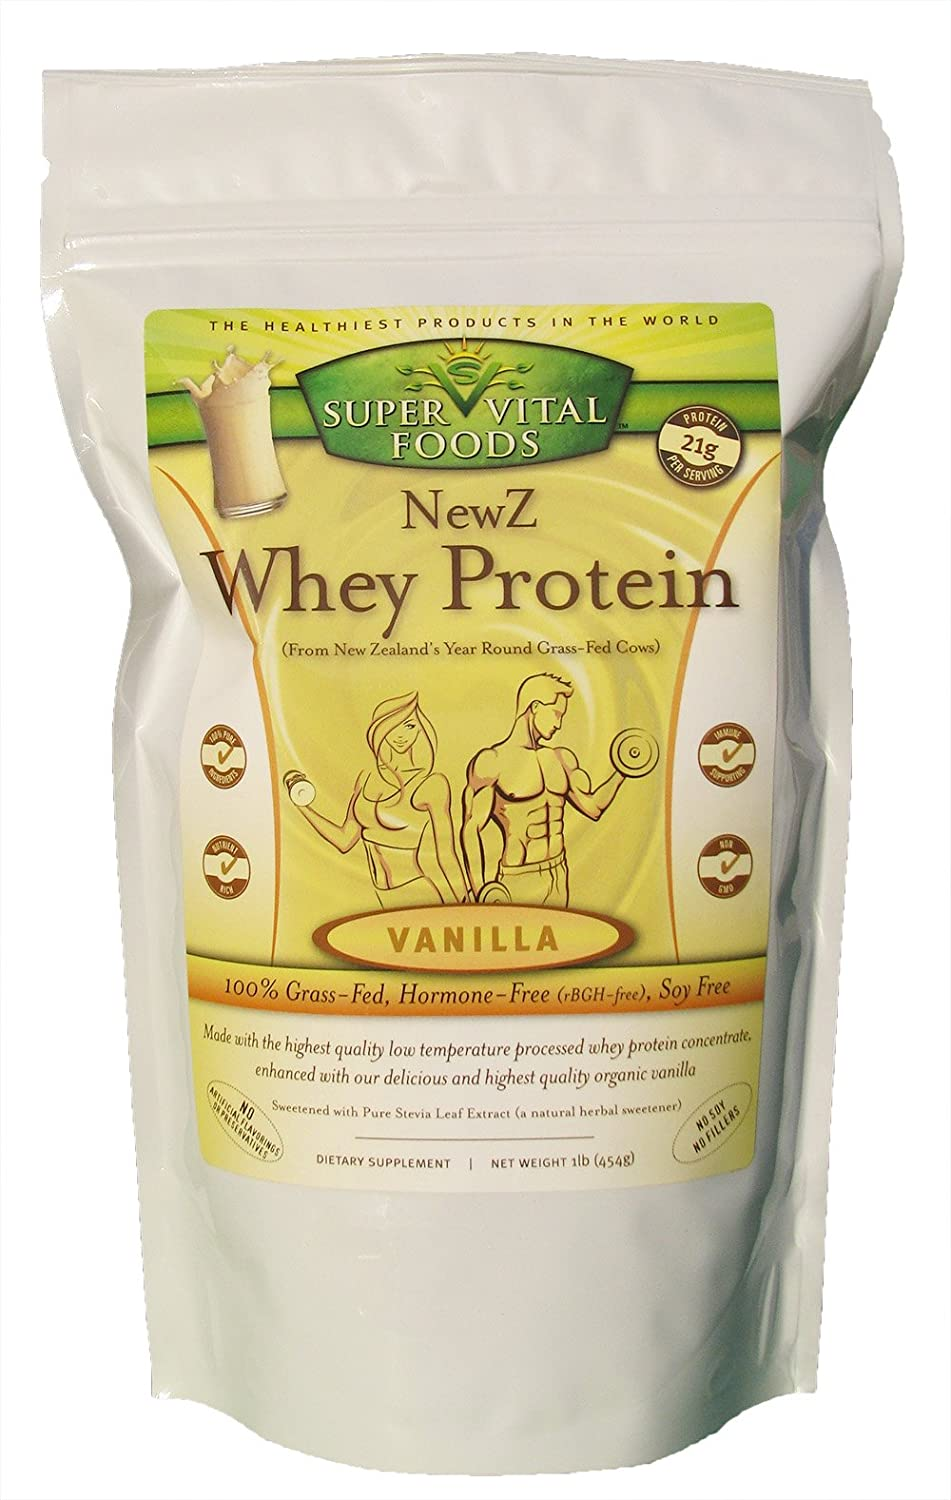 NewZ Whey Protein Vanilla 1LB – 100 Grass Fed New Zealand Whey – Low Temperature Processed